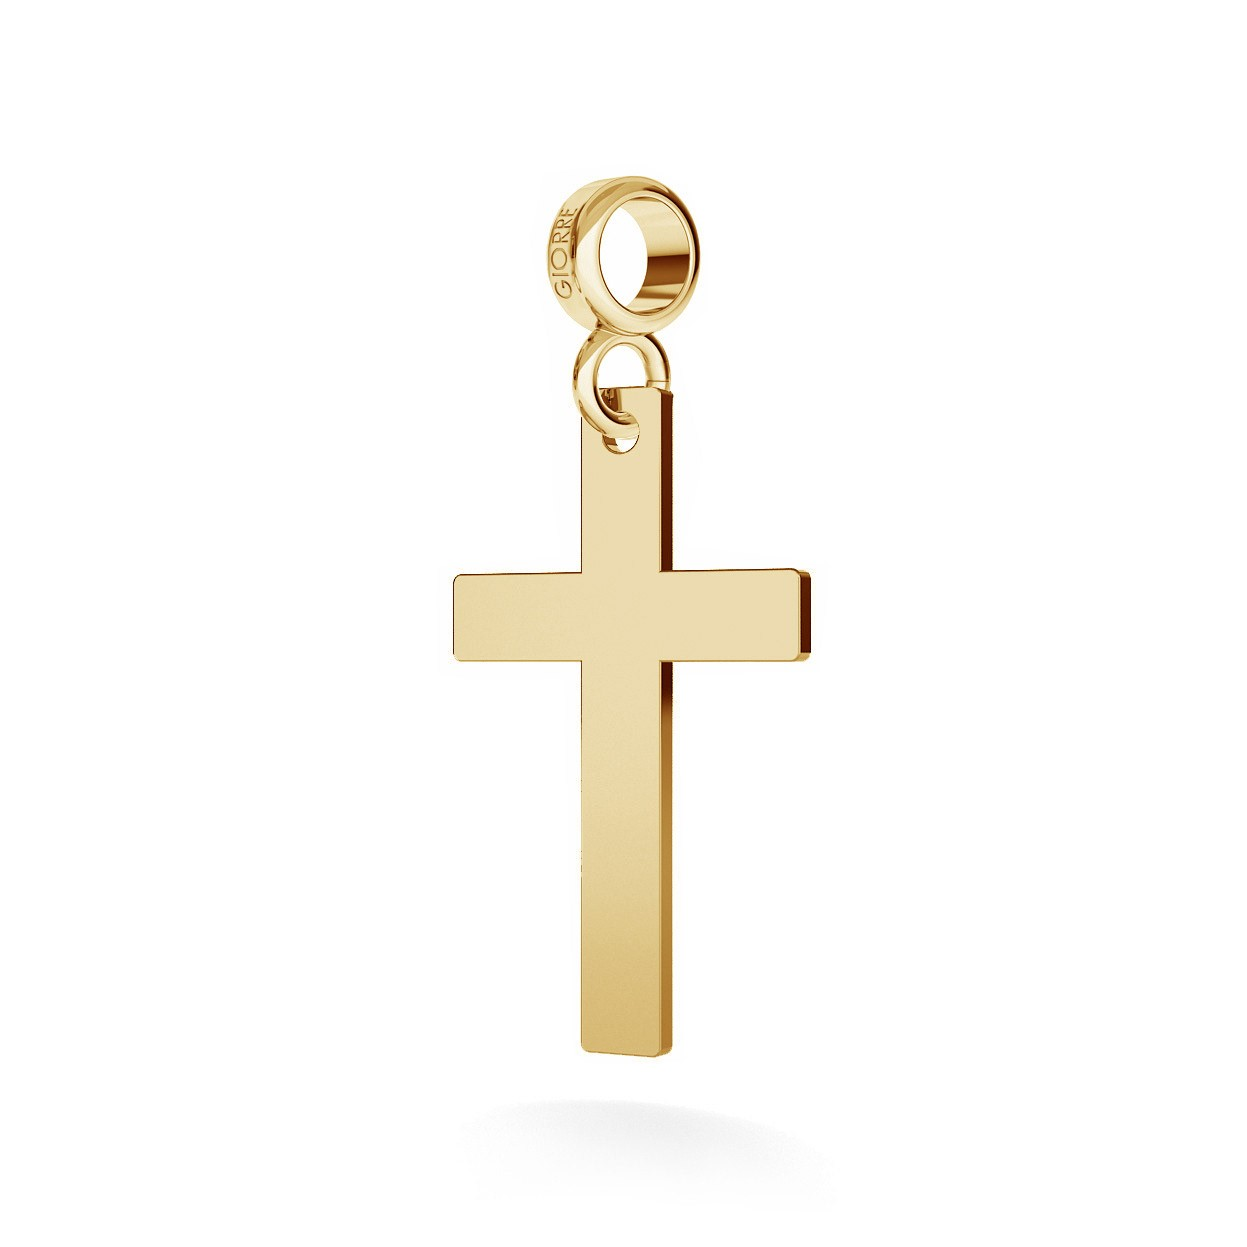 CHARM 27, CROSS, SILVER 925, RHODIUM OR GOLD PLATED